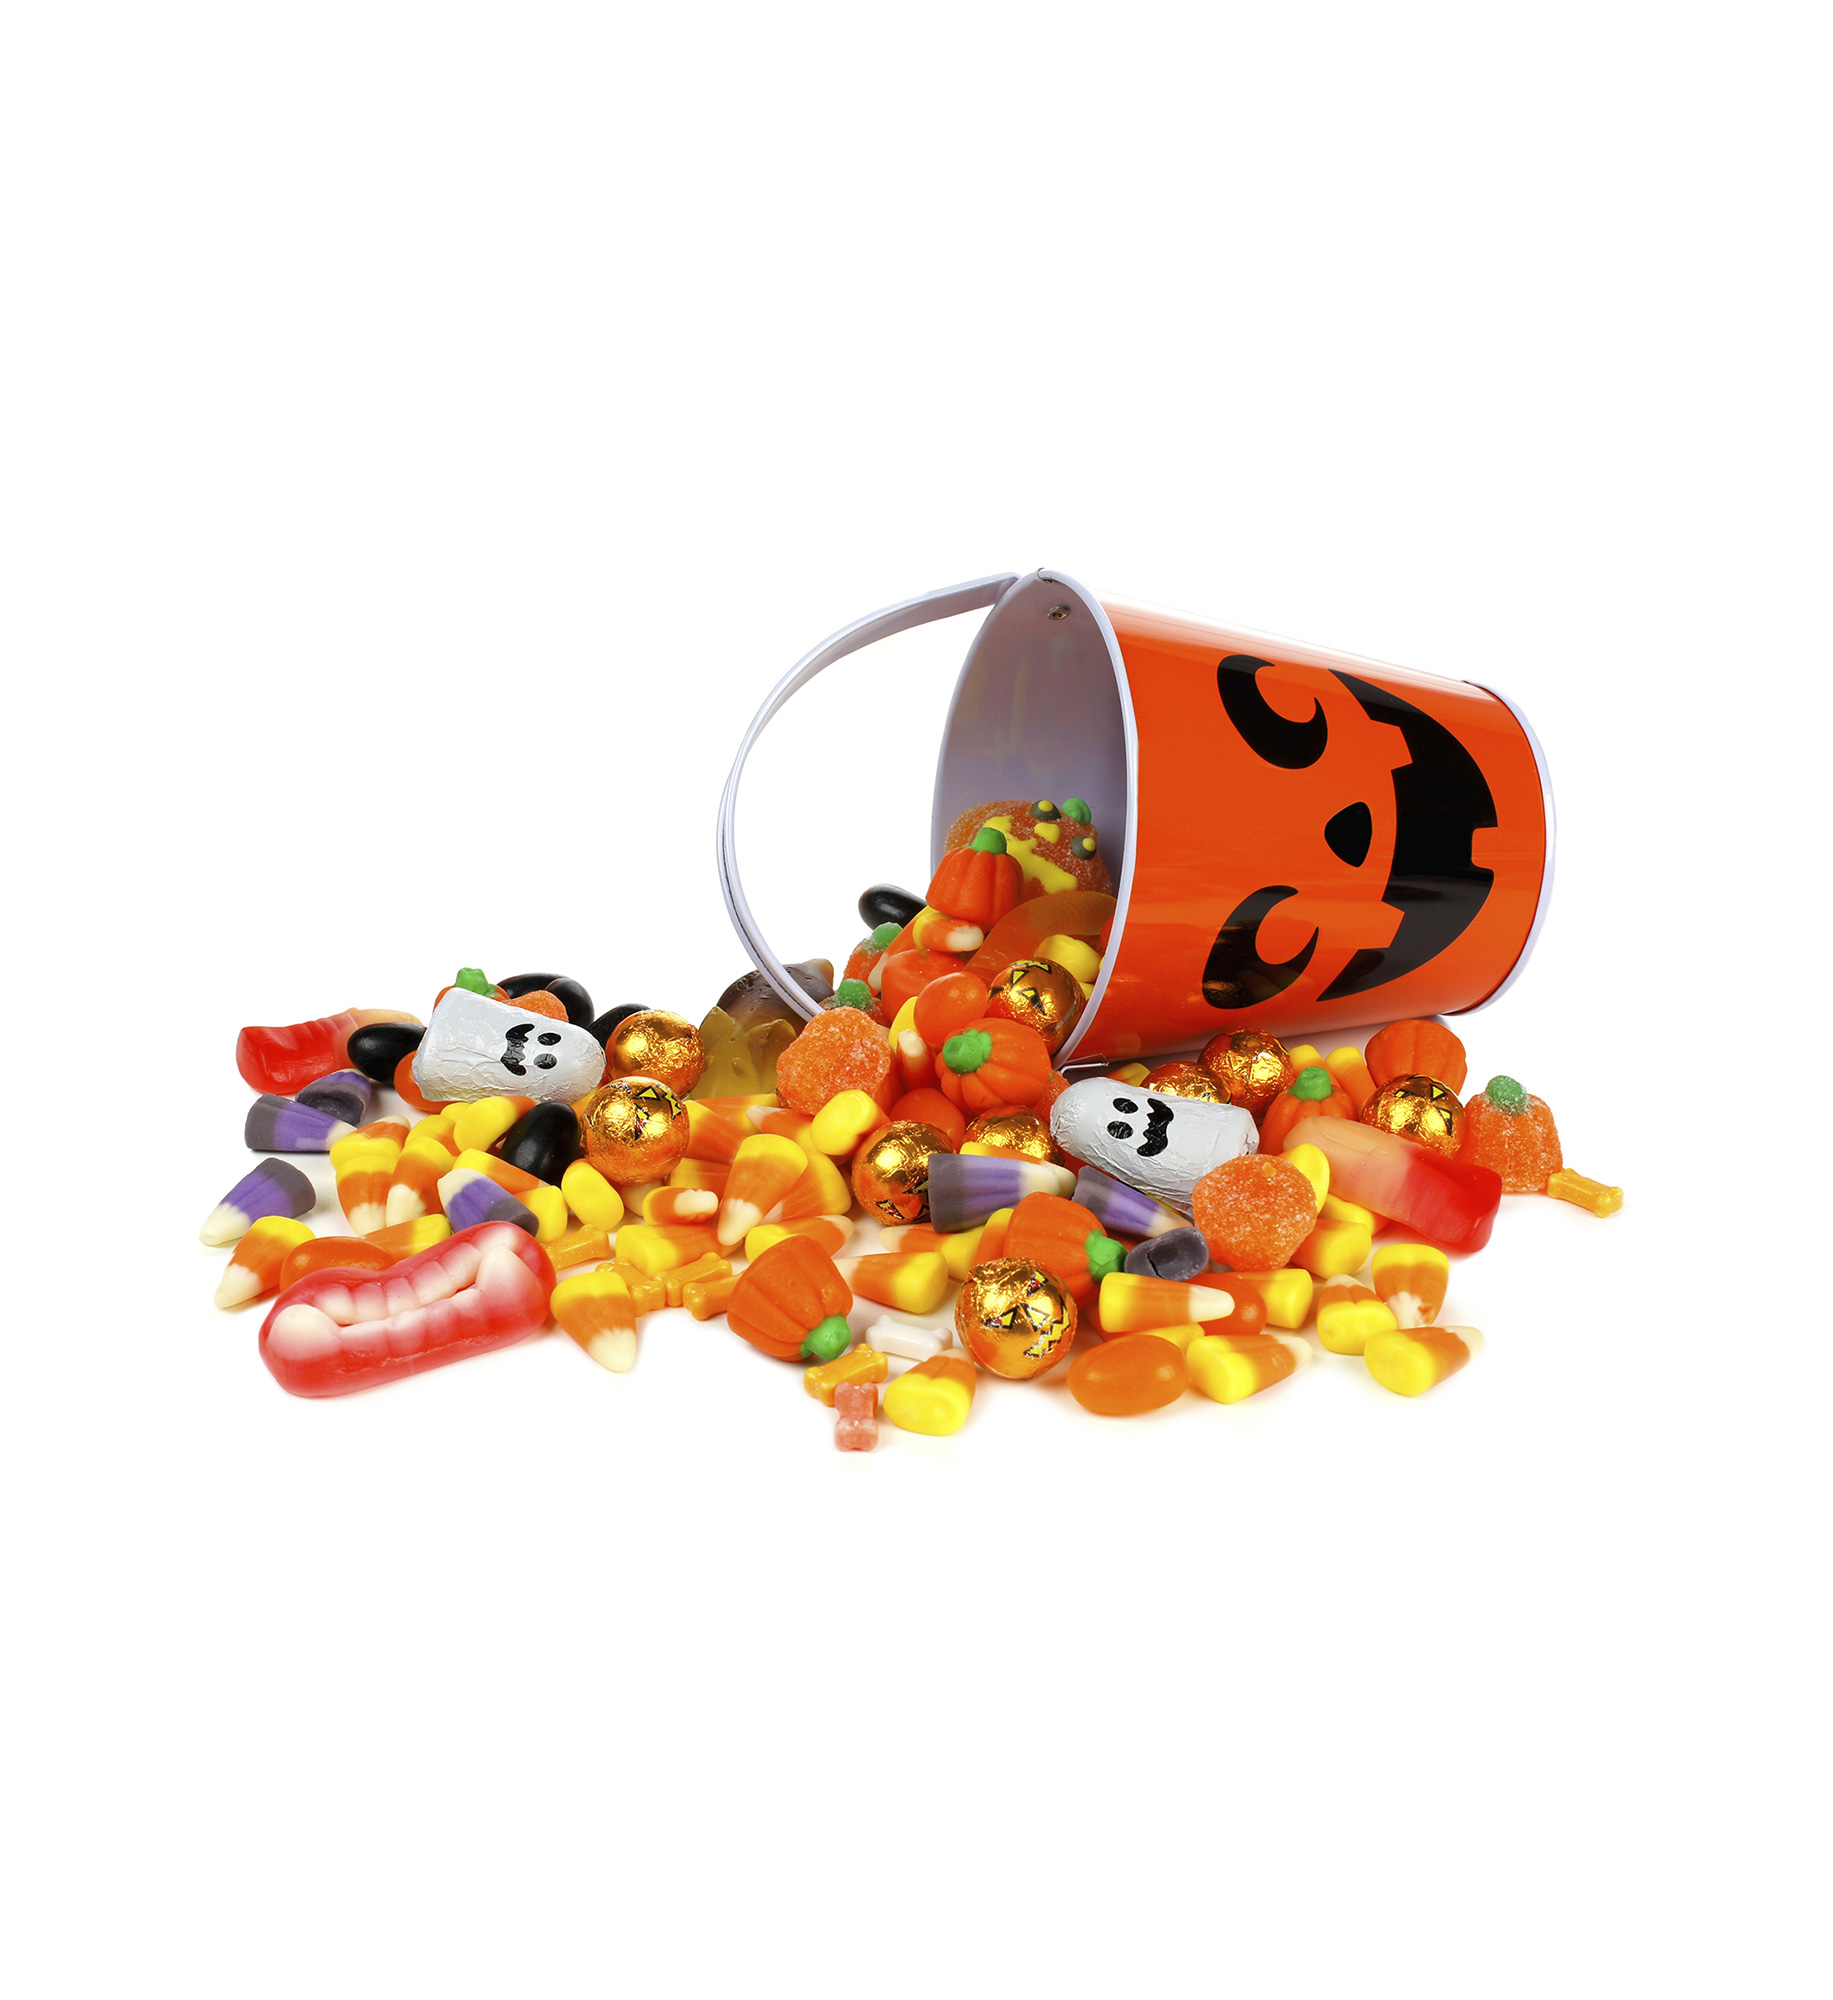 Spilled Halloween candy with Trick-or-Treat bucket